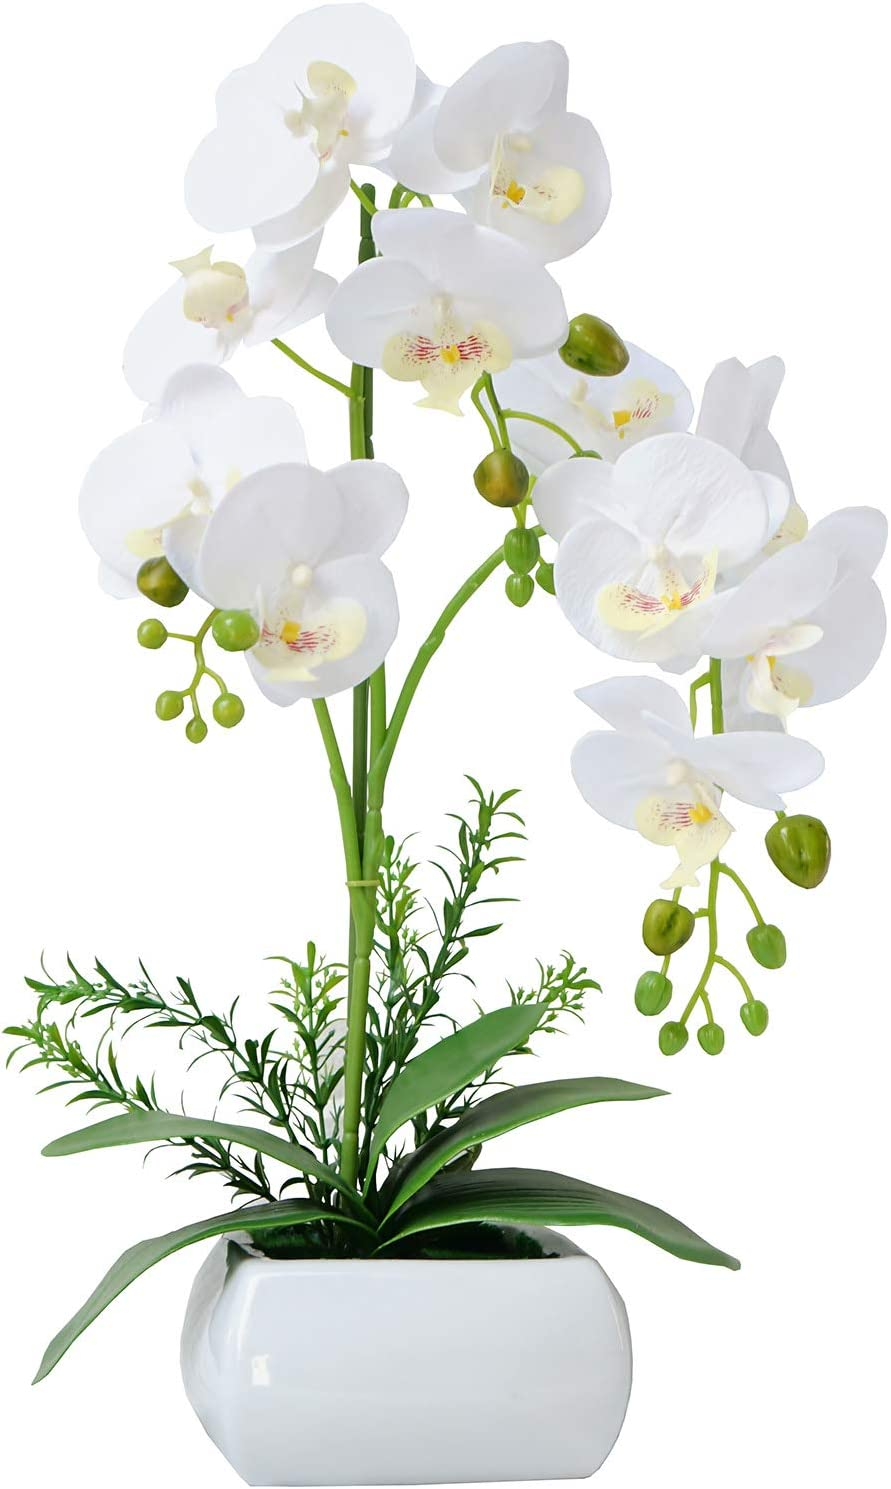 GXLMII Artificial Orchid with Vase for Kitchen Table Centerpiece, Faux Orchid Flowers Arrangements for Home Decor, Silk Phalaenopsis Fake Orchid White Artificial Flowers with Pot